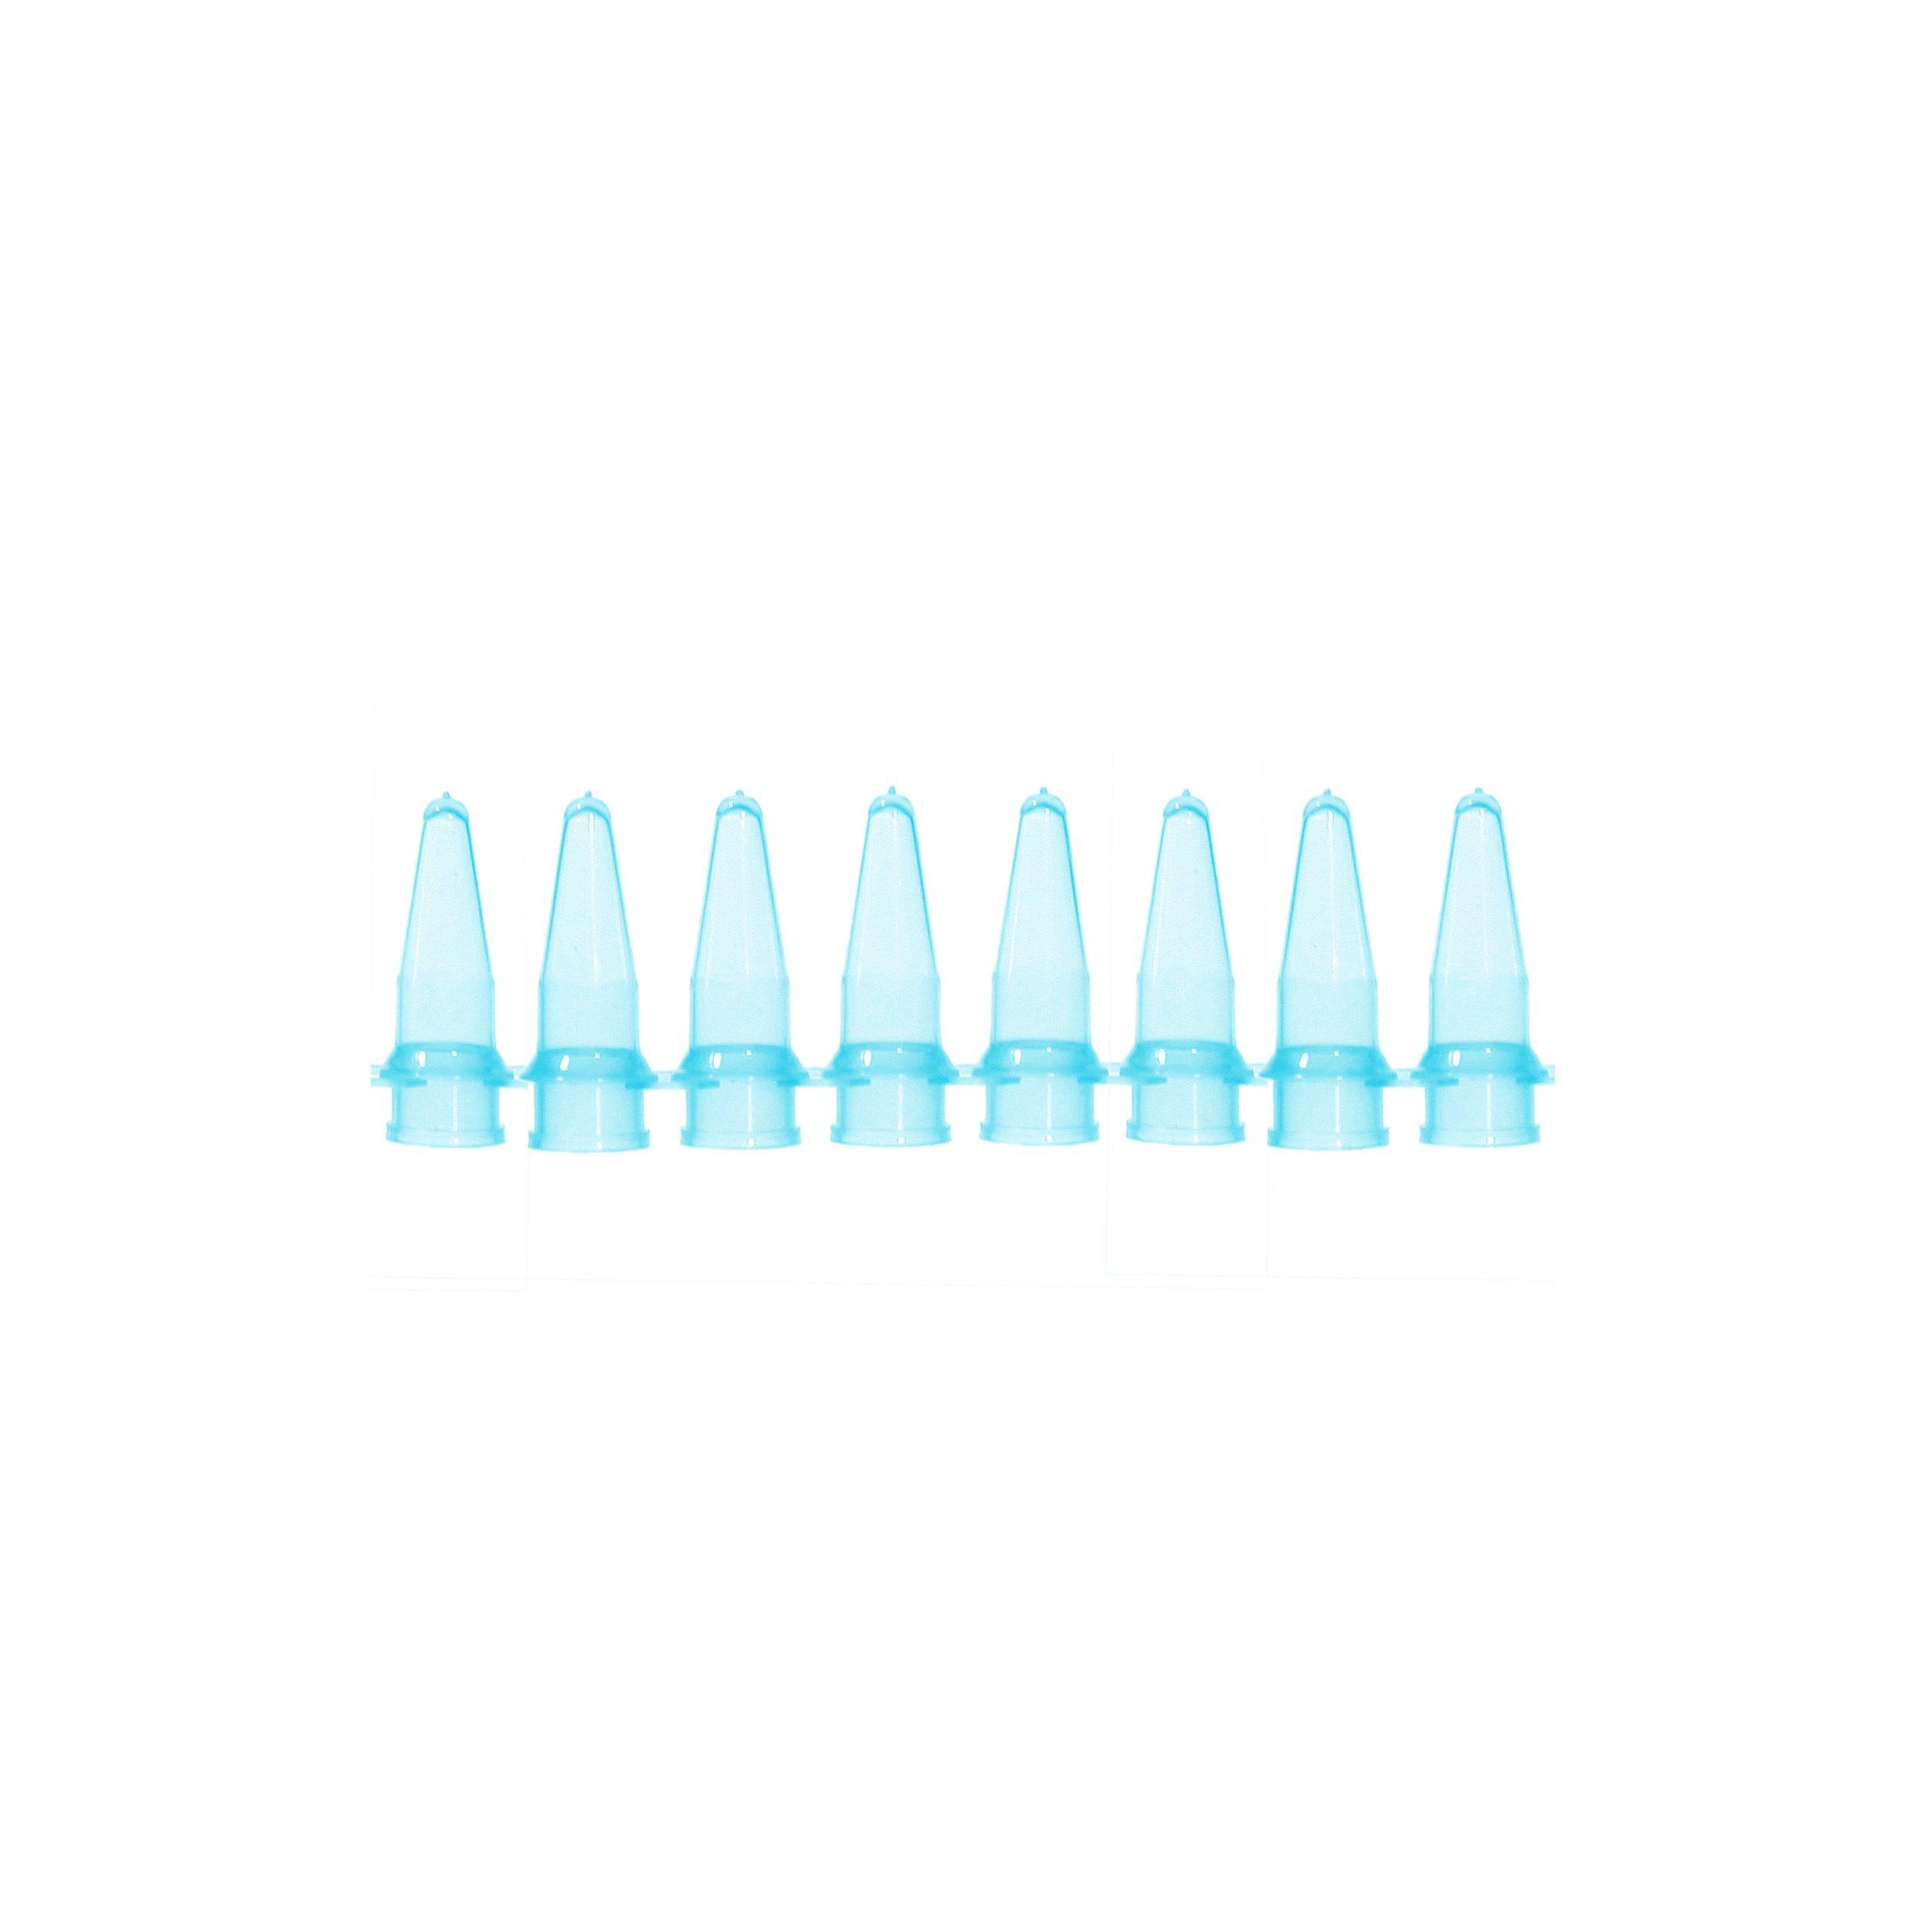 Bio Plas 5010-4 Polypropylene 0.2mL 8 Strip Micro Tube for Thermal Cycling, Blue (Pack of 125) by Bio Plas (Image #2)